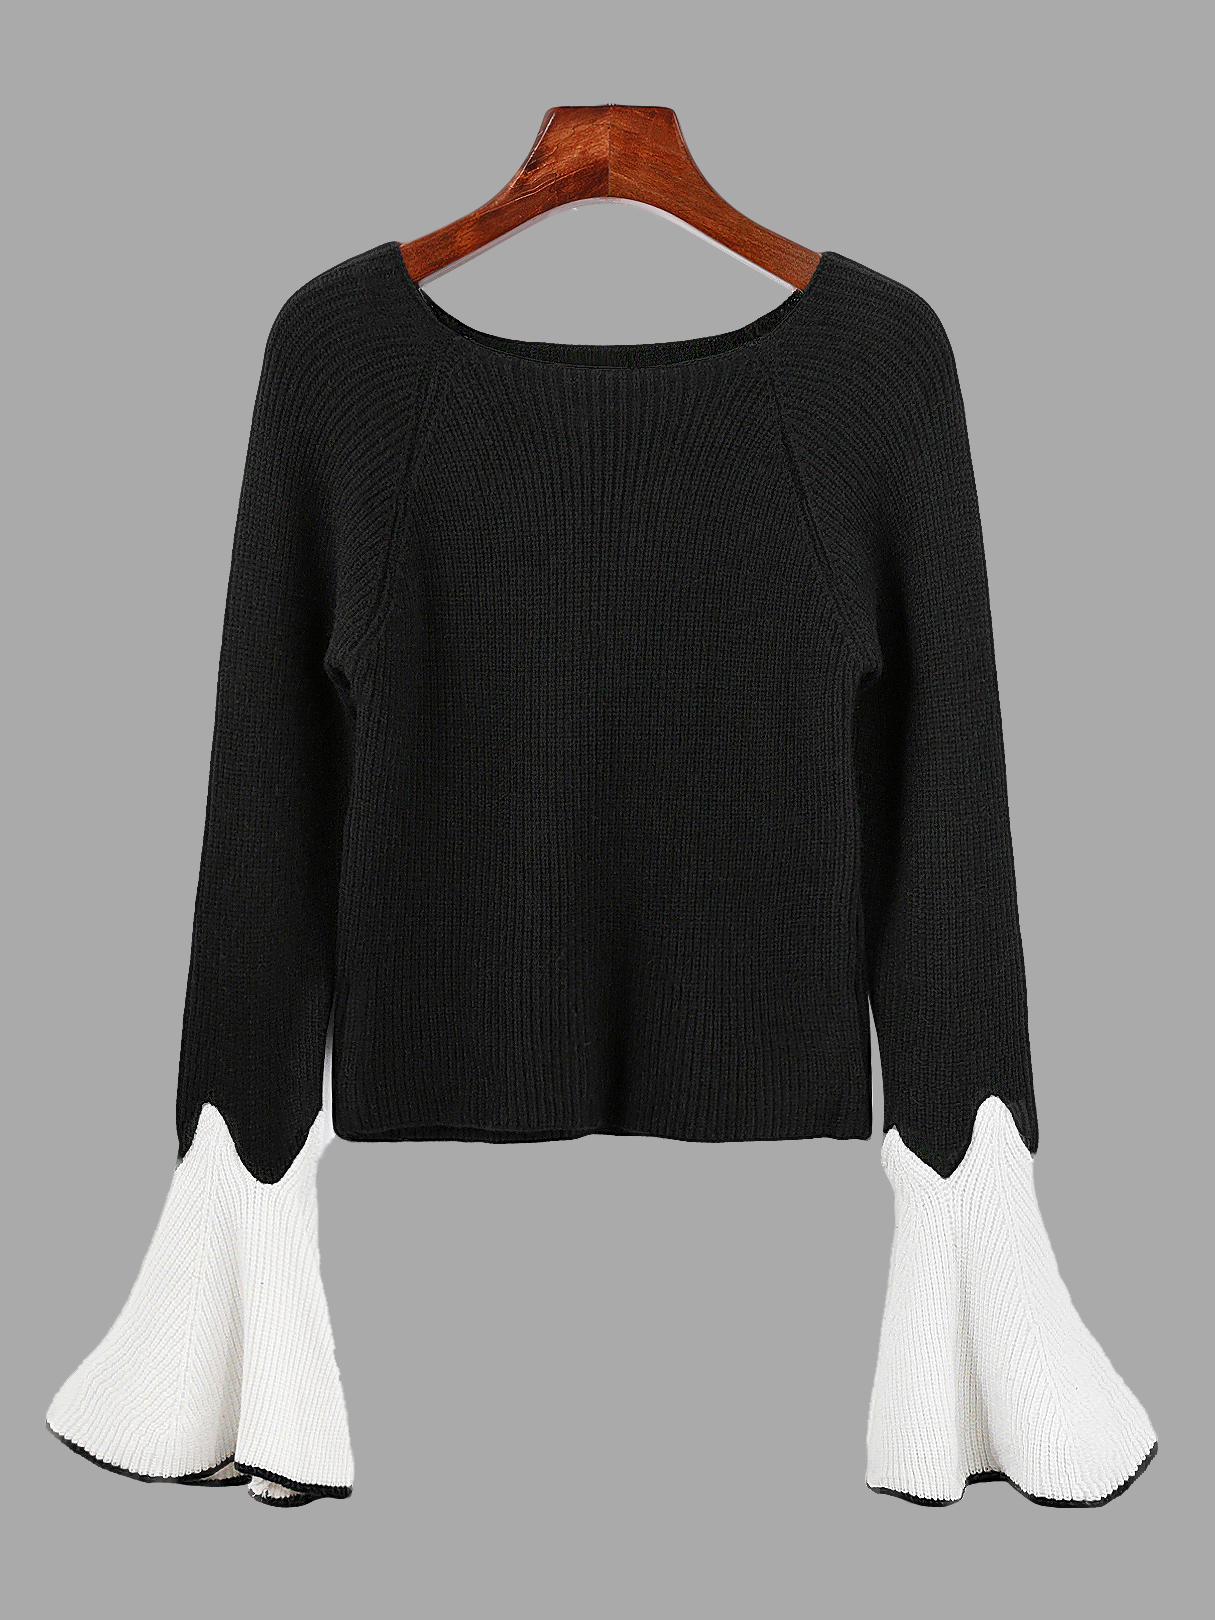 Cute Black Round Neck Long Flares Sleeves Sweater декор impronta ceramiche square wall blu formelle glitter 12 25x25